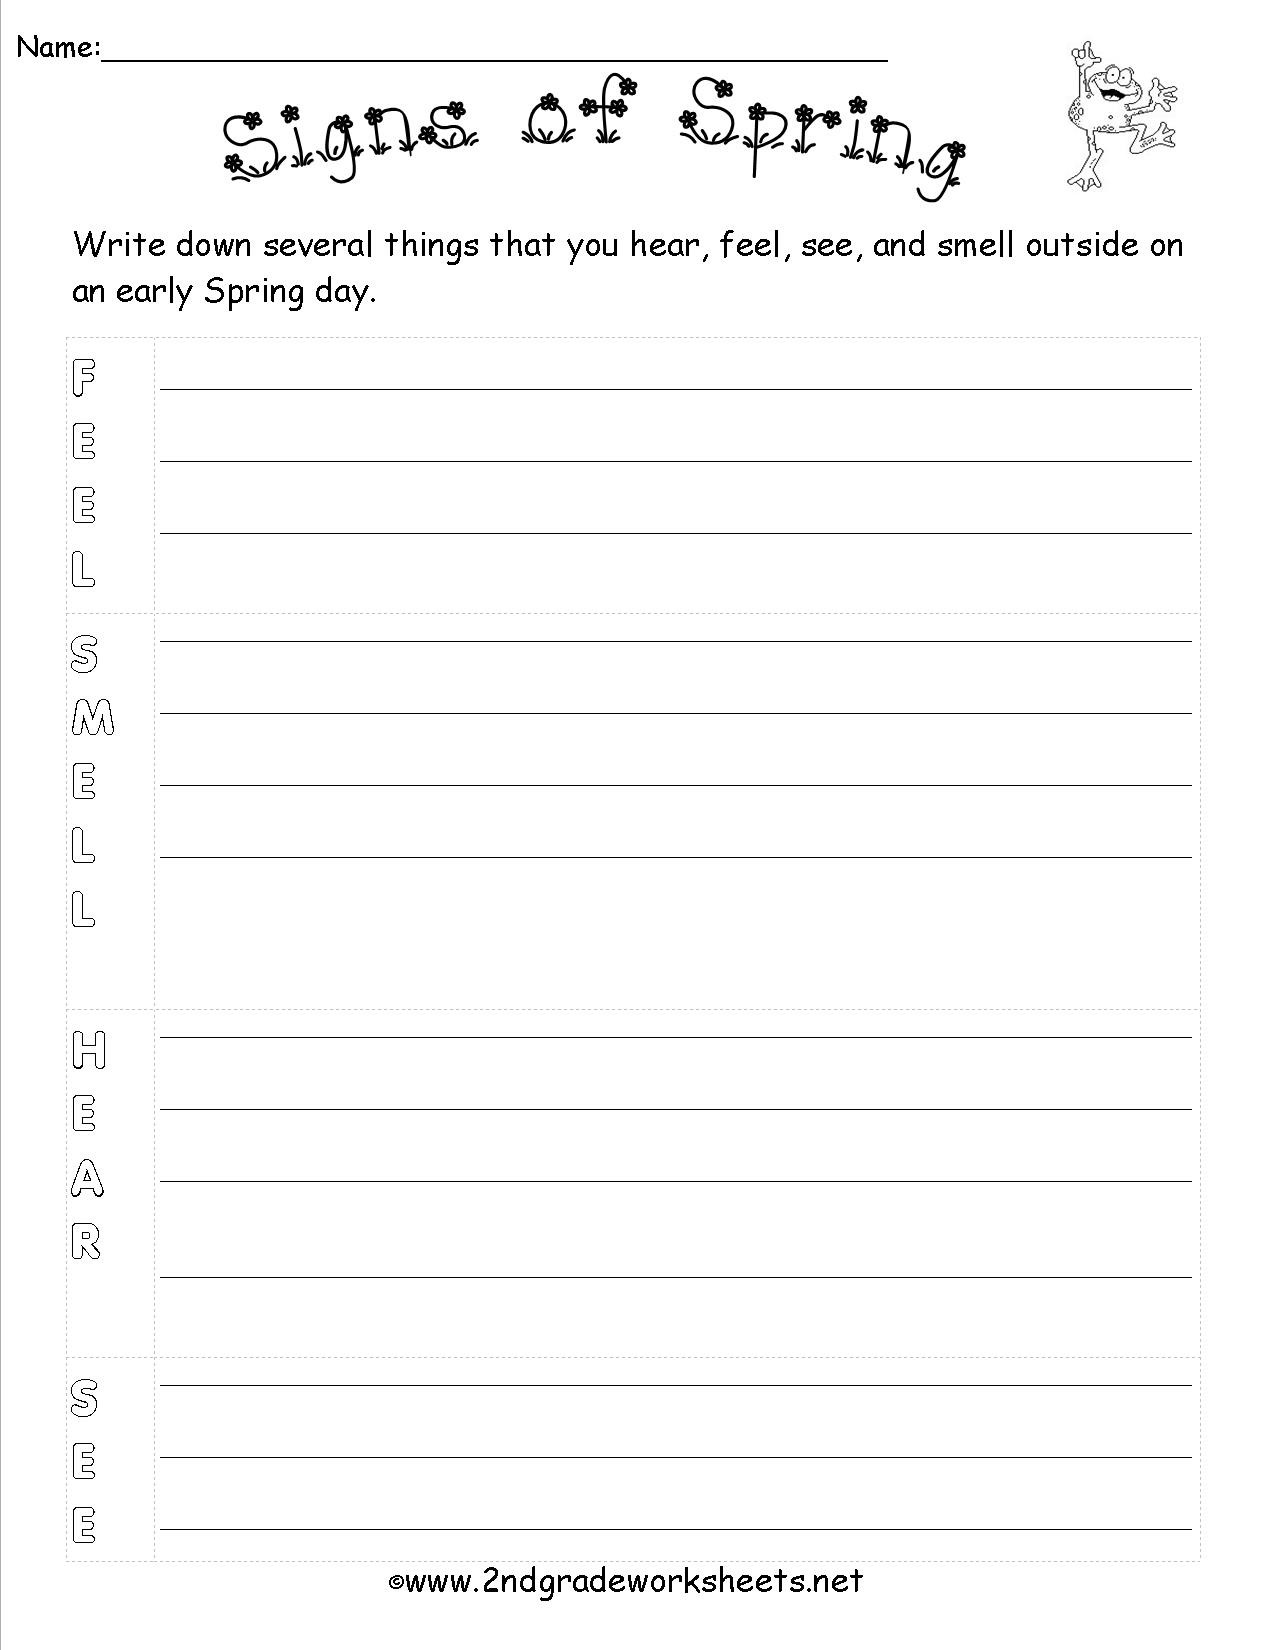 Theme Worksheets 2nd Grade Spring theme Worksheets